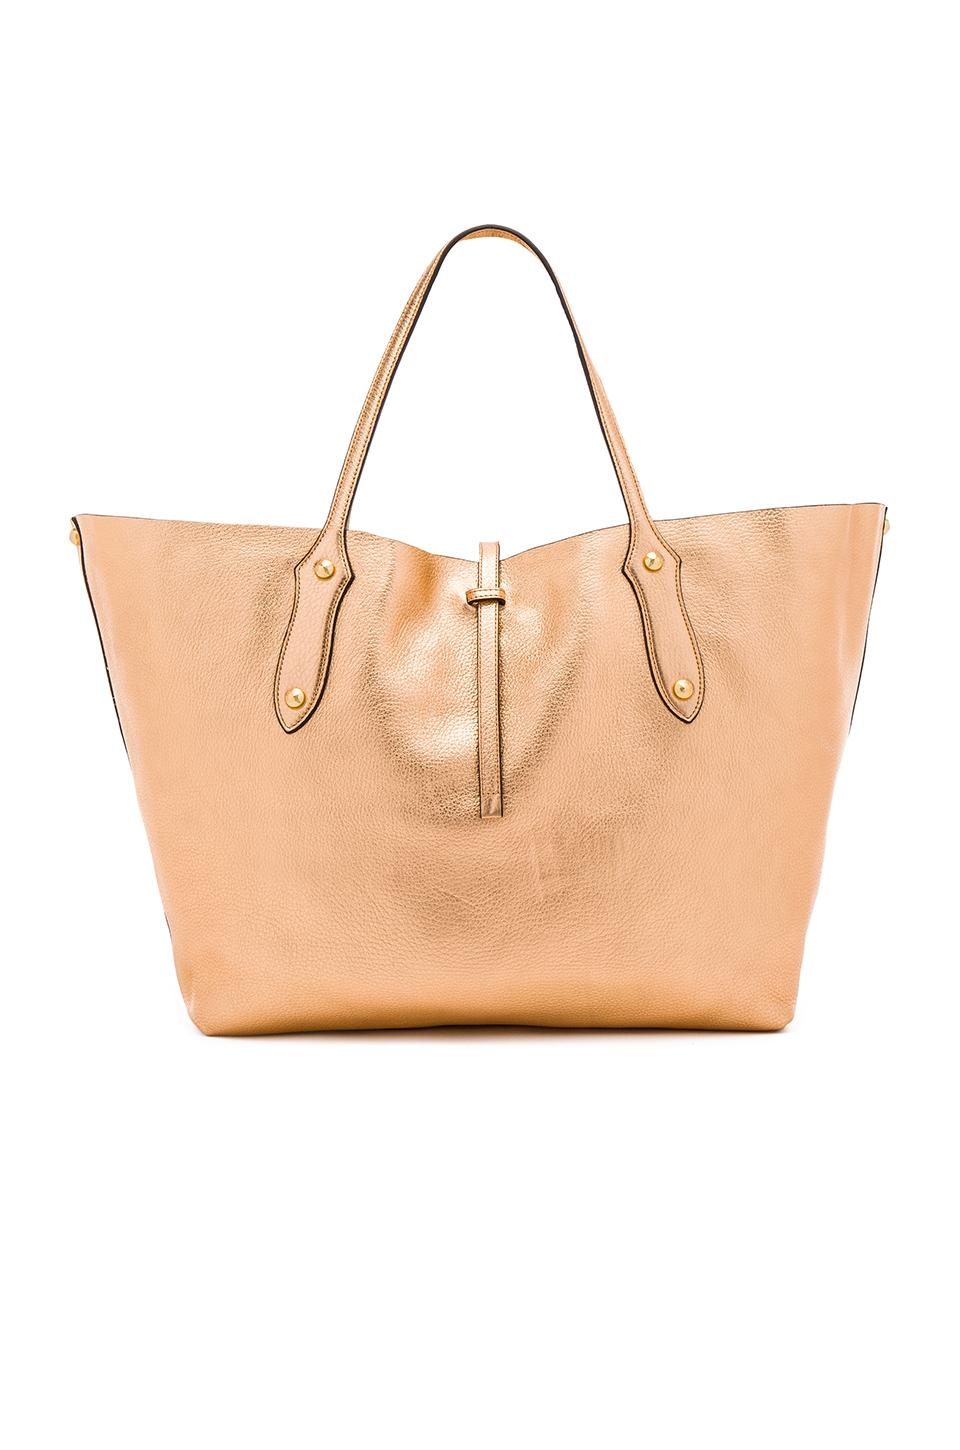 Annabel Ingall Large Isabella Tote In Champagne